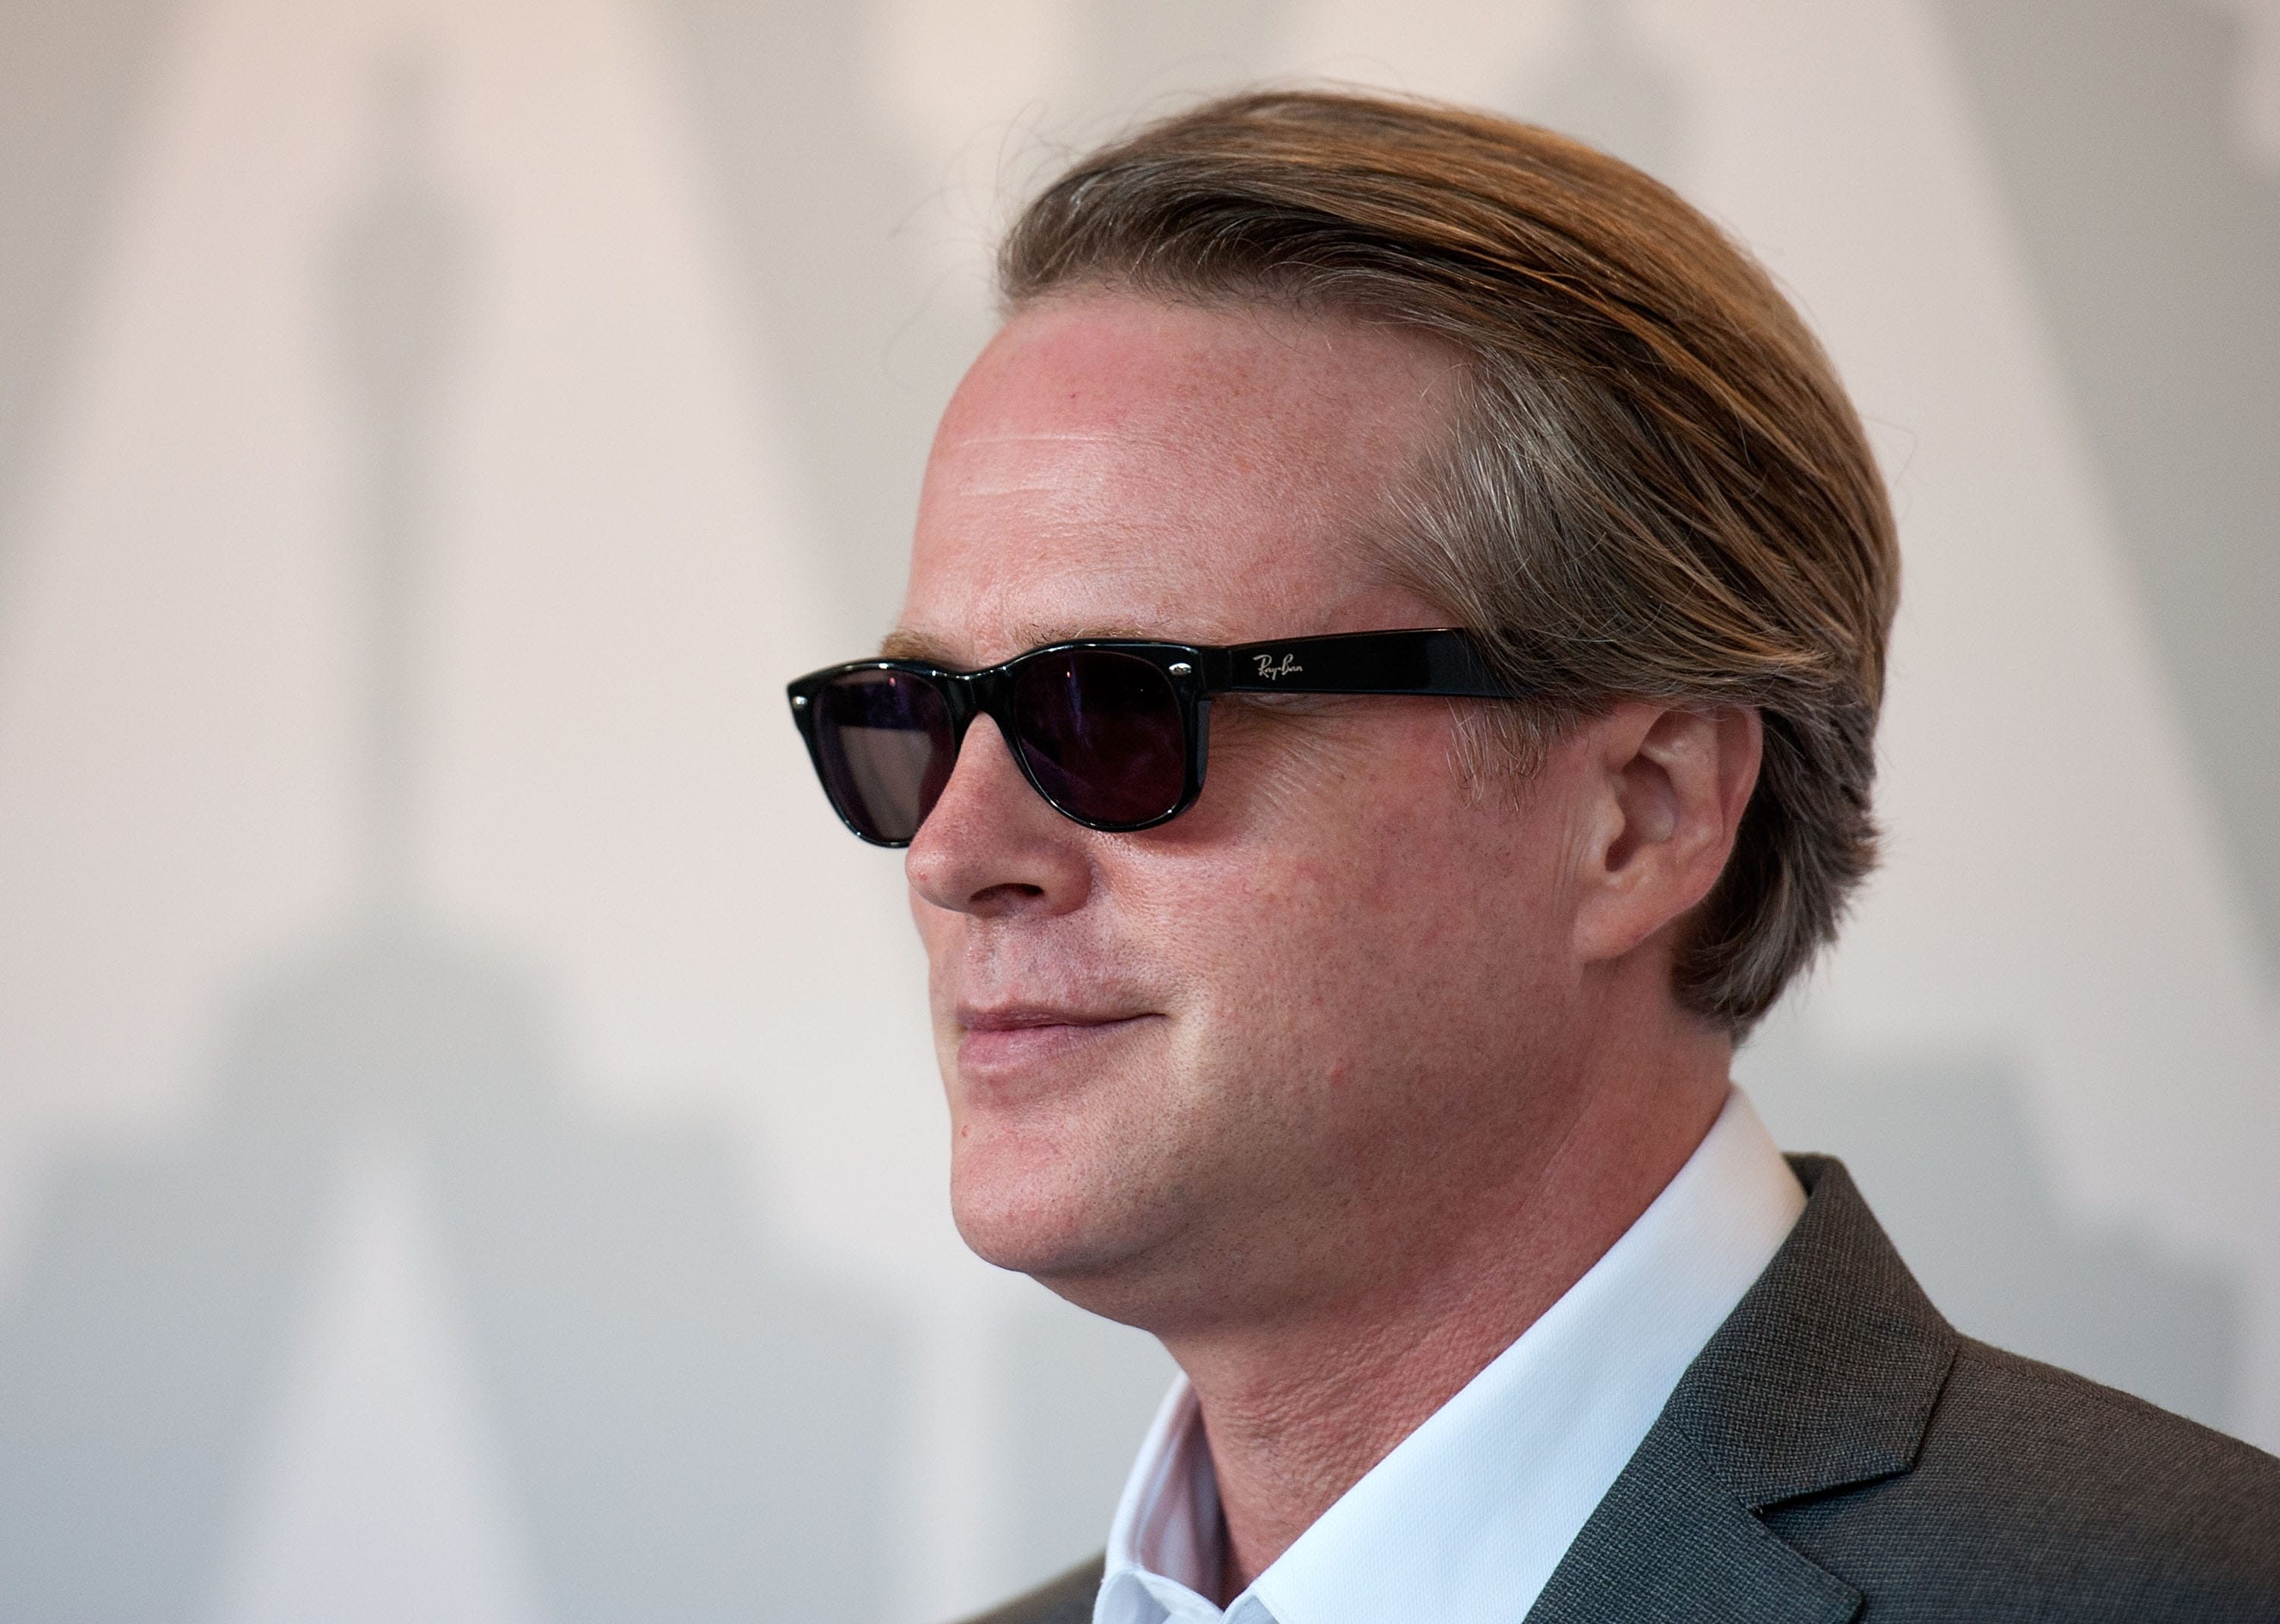 Cary Elwes Full hd wallpapers